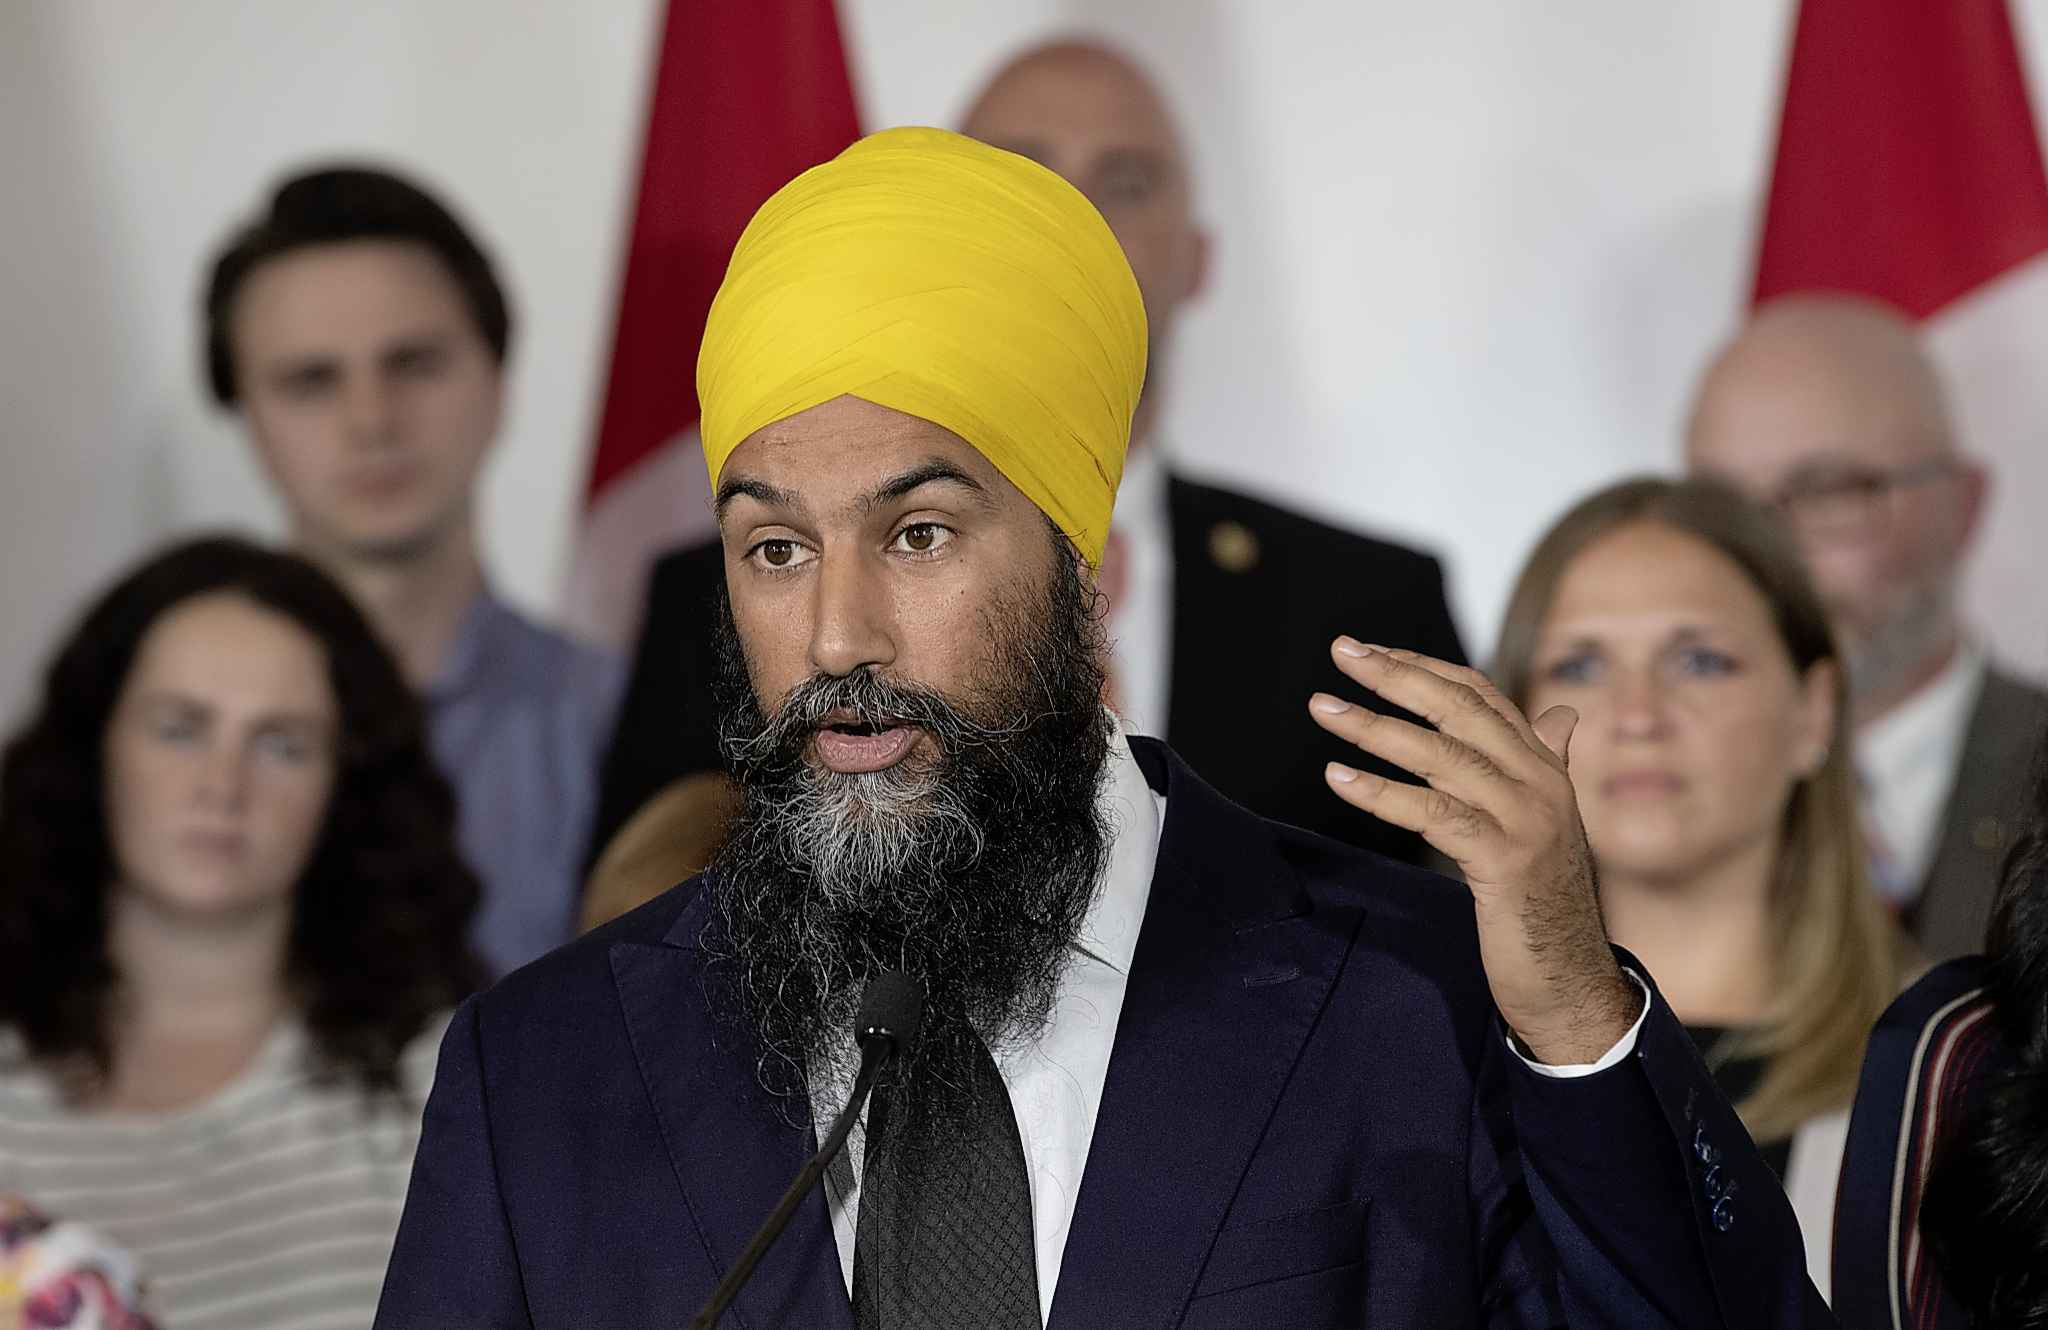 ADRIAN WYLD / TE CANADIAN PRESS</p><p>NDP leader Jagmeet Singh speaks during a campaign stop in London, Ontario on Wednesday September 11, 2019.</p>